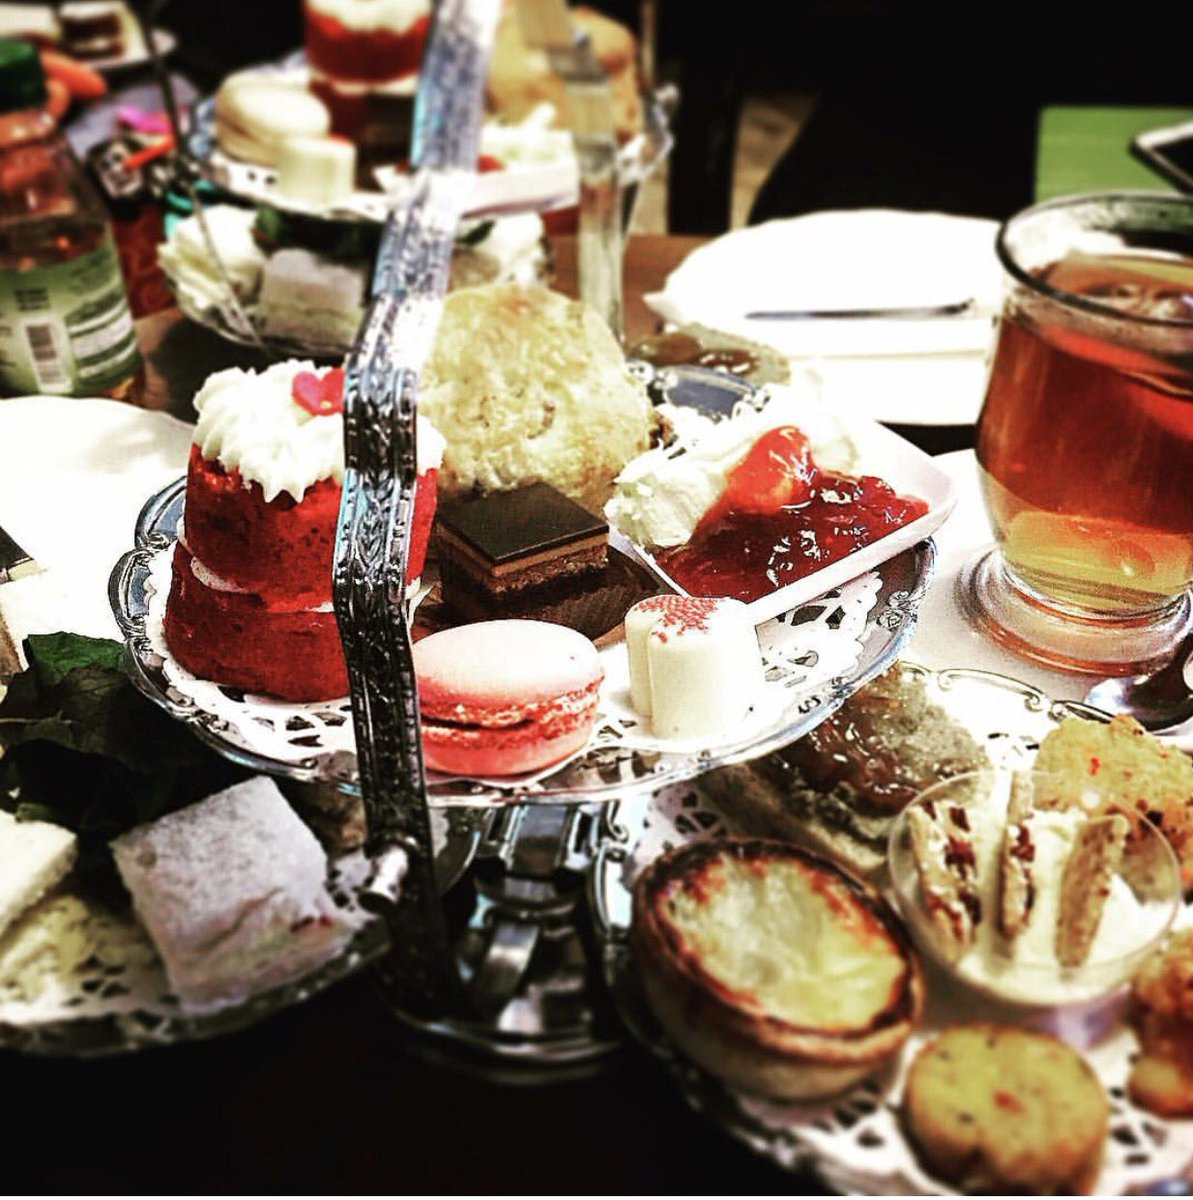 This is Mrs Danvers Vegetarian Afternoon Tea. Selections of sandwiches, savouries &amp; sweets. #afternoontea #cake #tea #mrsdanverscafe #treat<br>http://pic.twitter.com/Tnulo2gexN